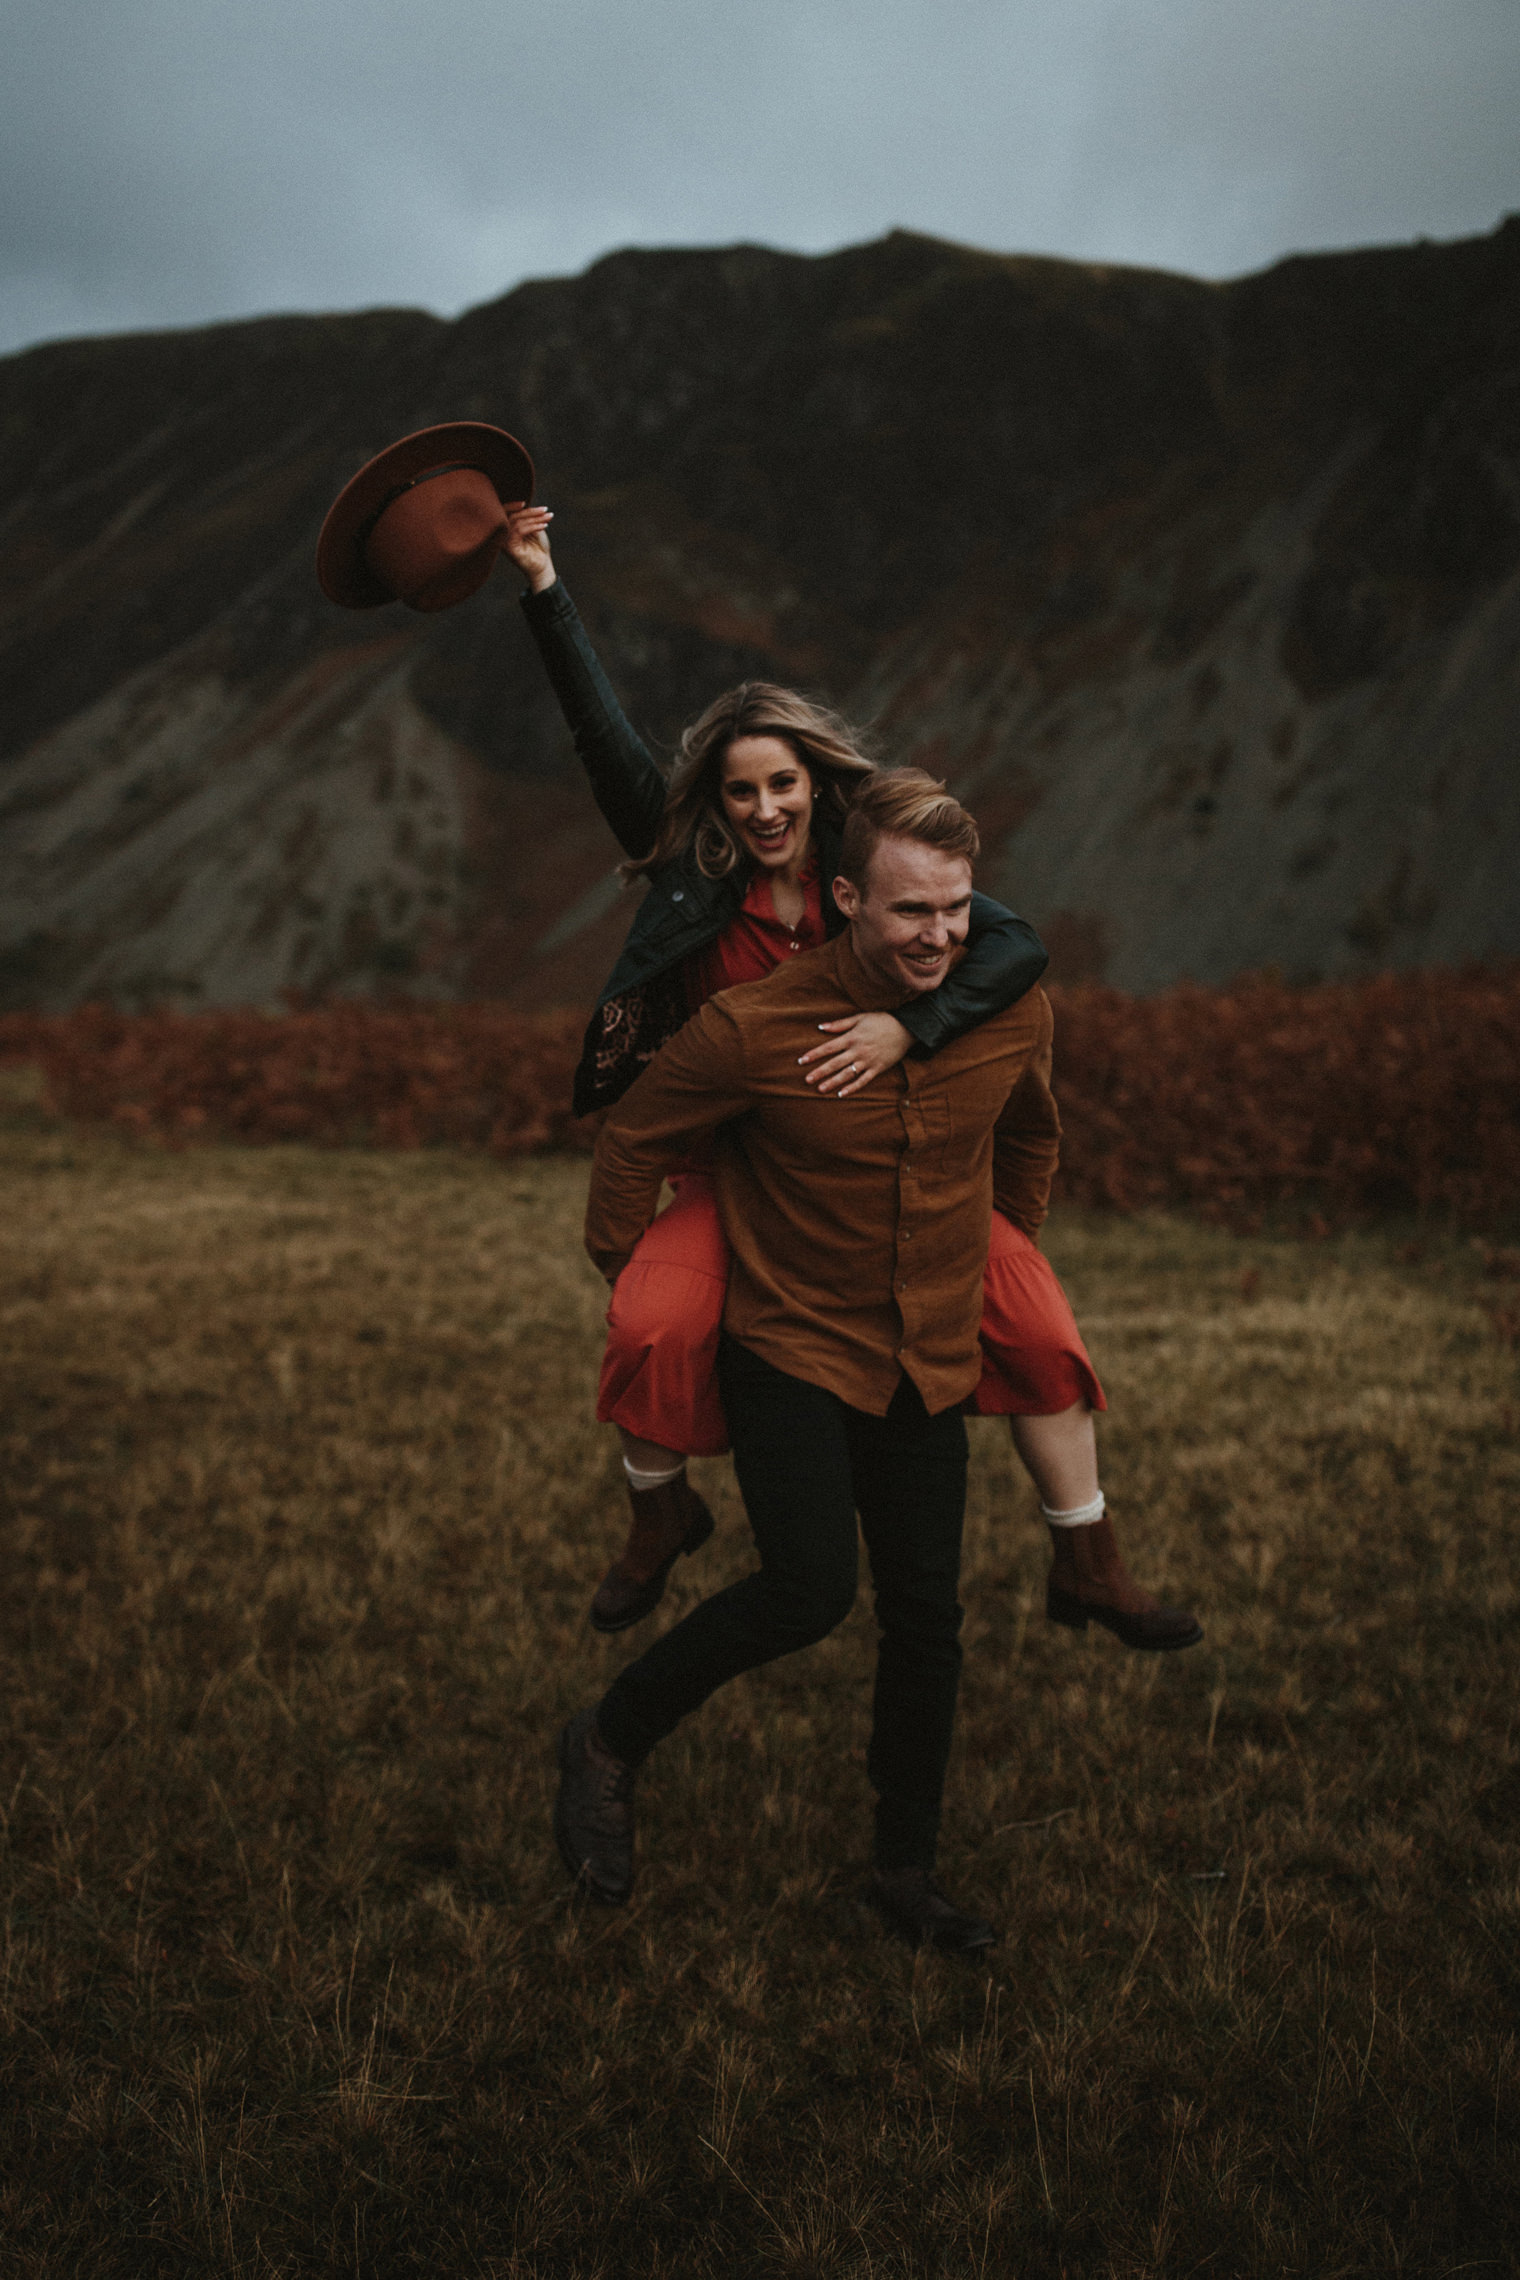 Piggyback ride during Couples Portrait Session in the Lake District